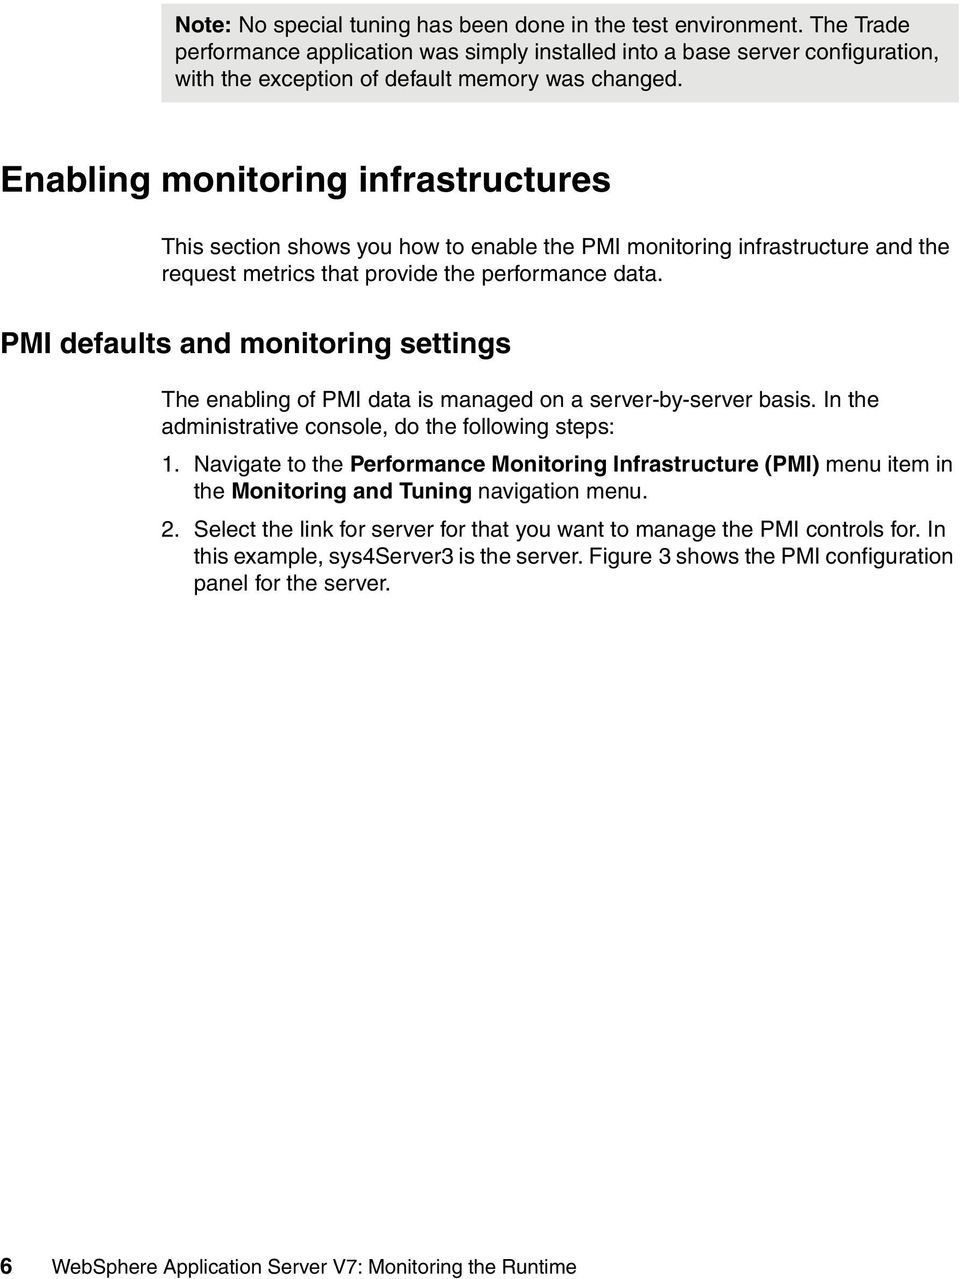 Enabling monitoring infrastructures This section shows you how to enable the PMI monitoring infrastructure and the request metrics that provide the performance data.